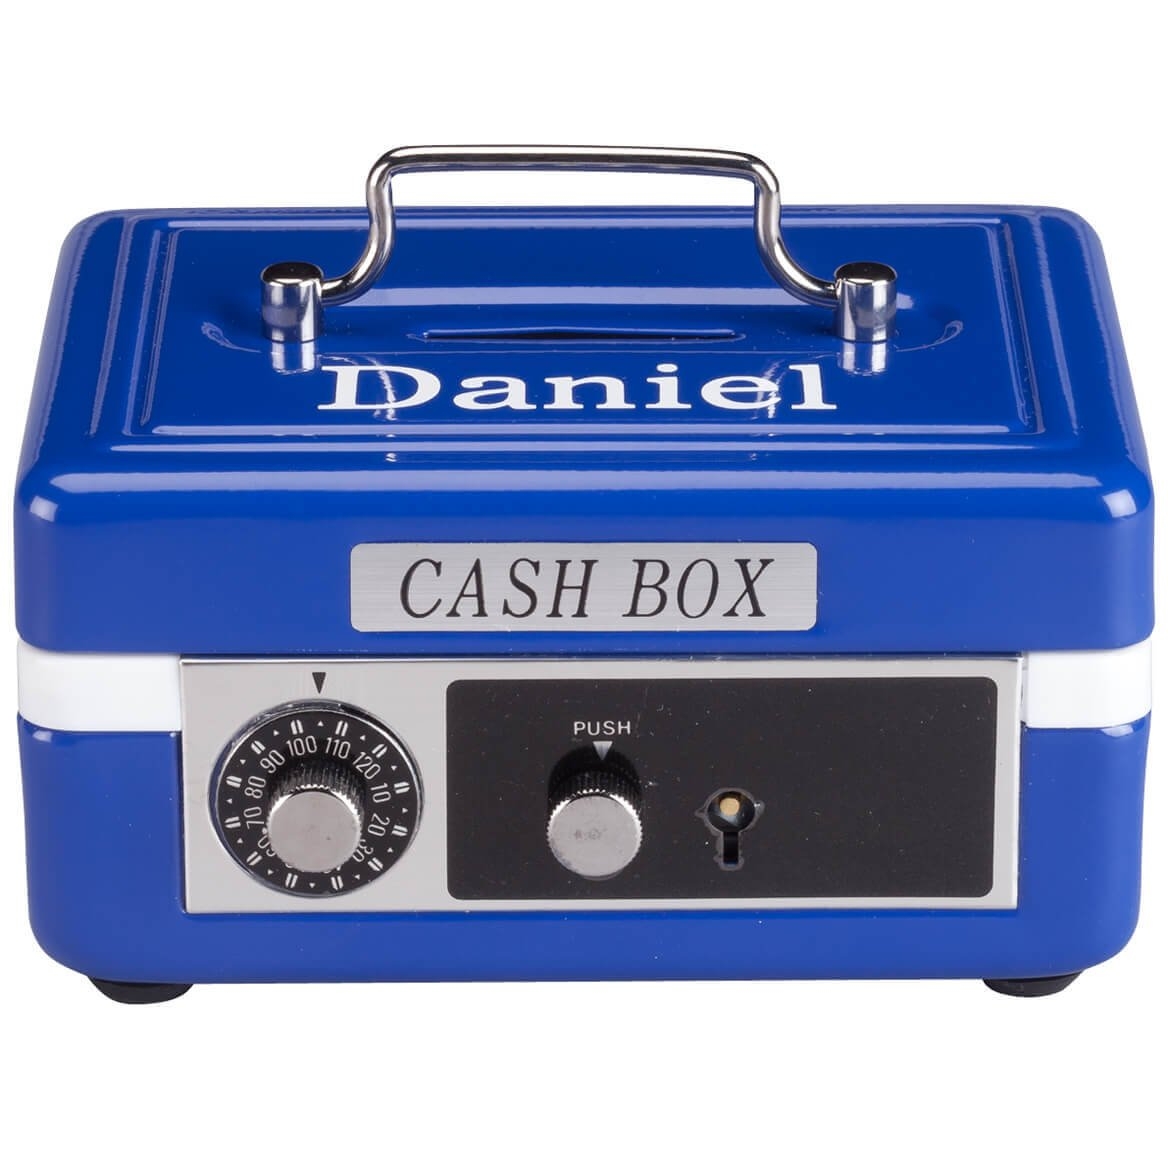 Personalized Children's Cash Box - Blue